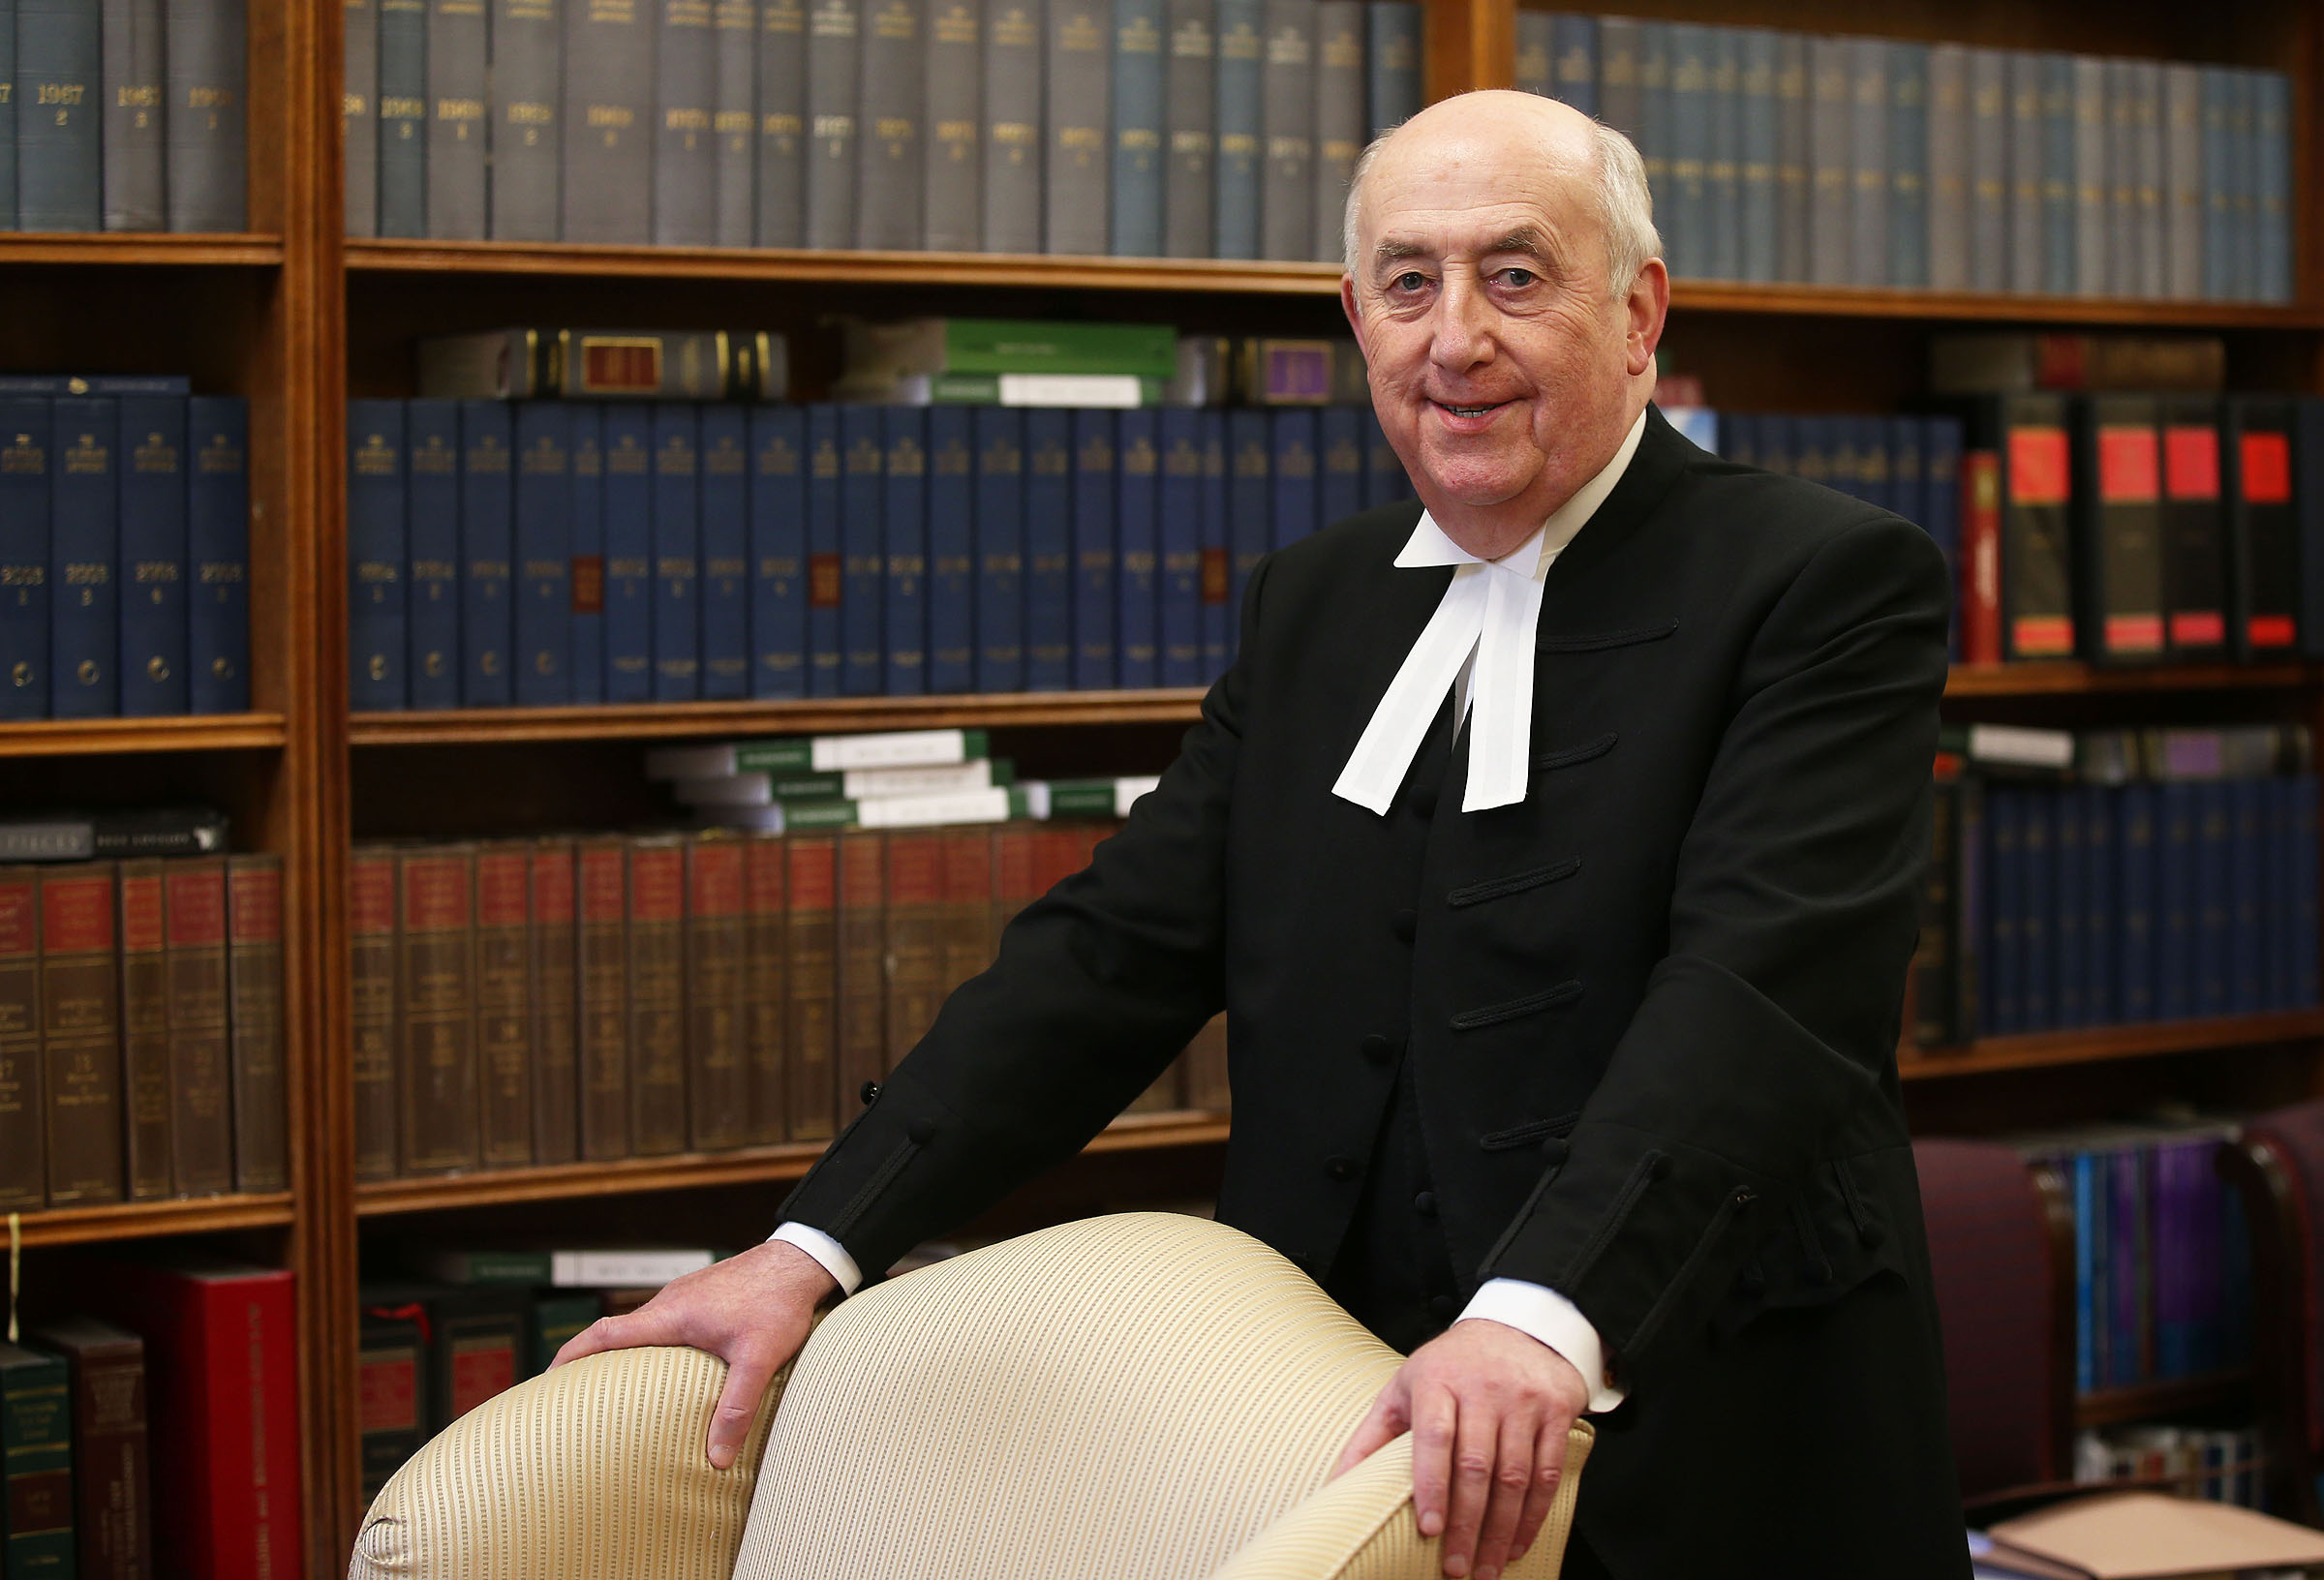 Mr Justice Peter Kelly